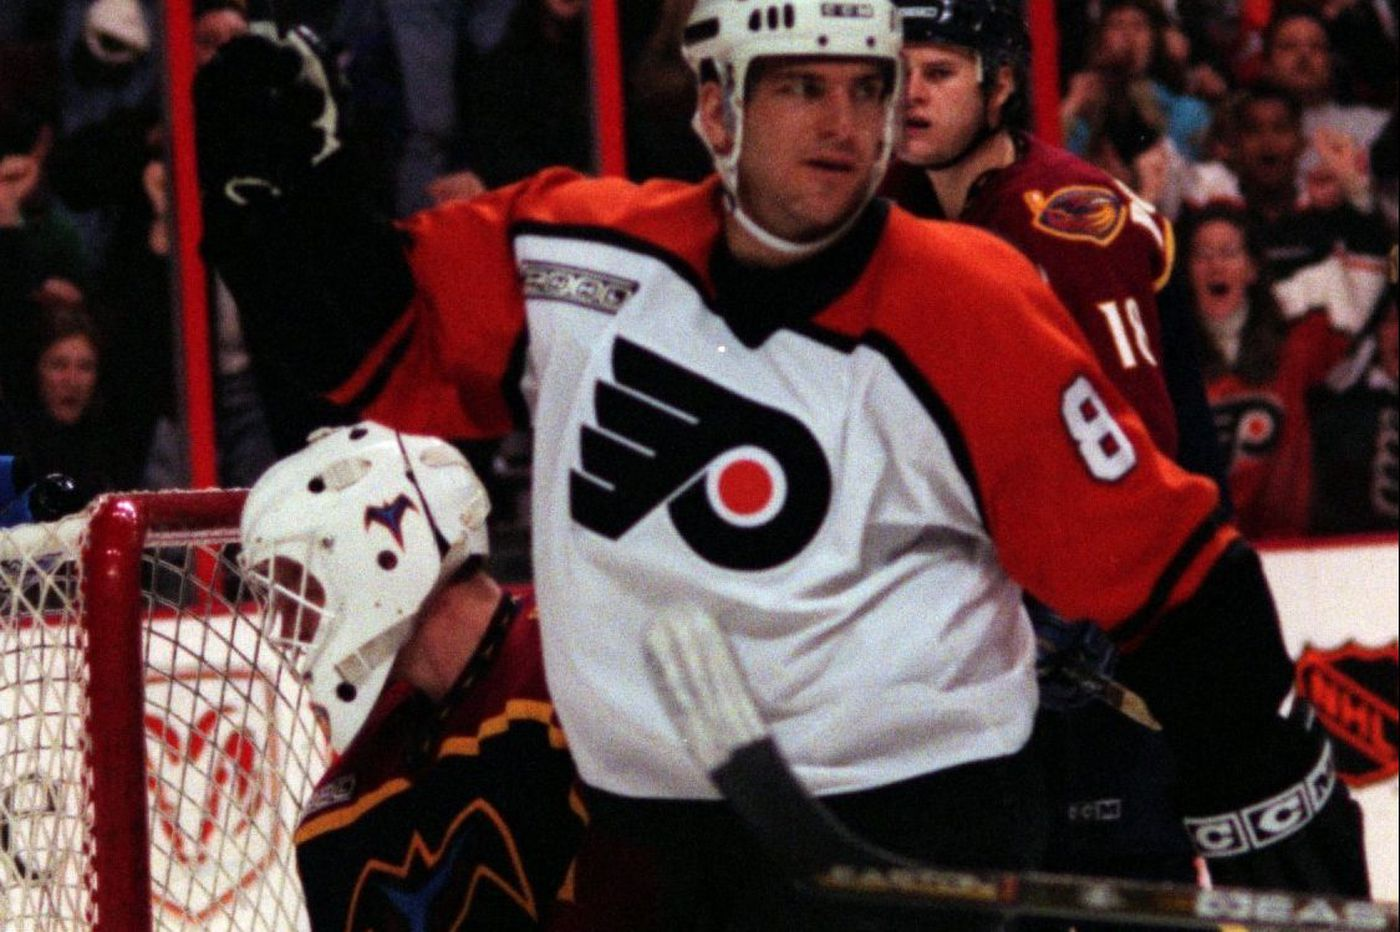 Hall of Fame finally welcomes former Flyers winger Mark Recchi